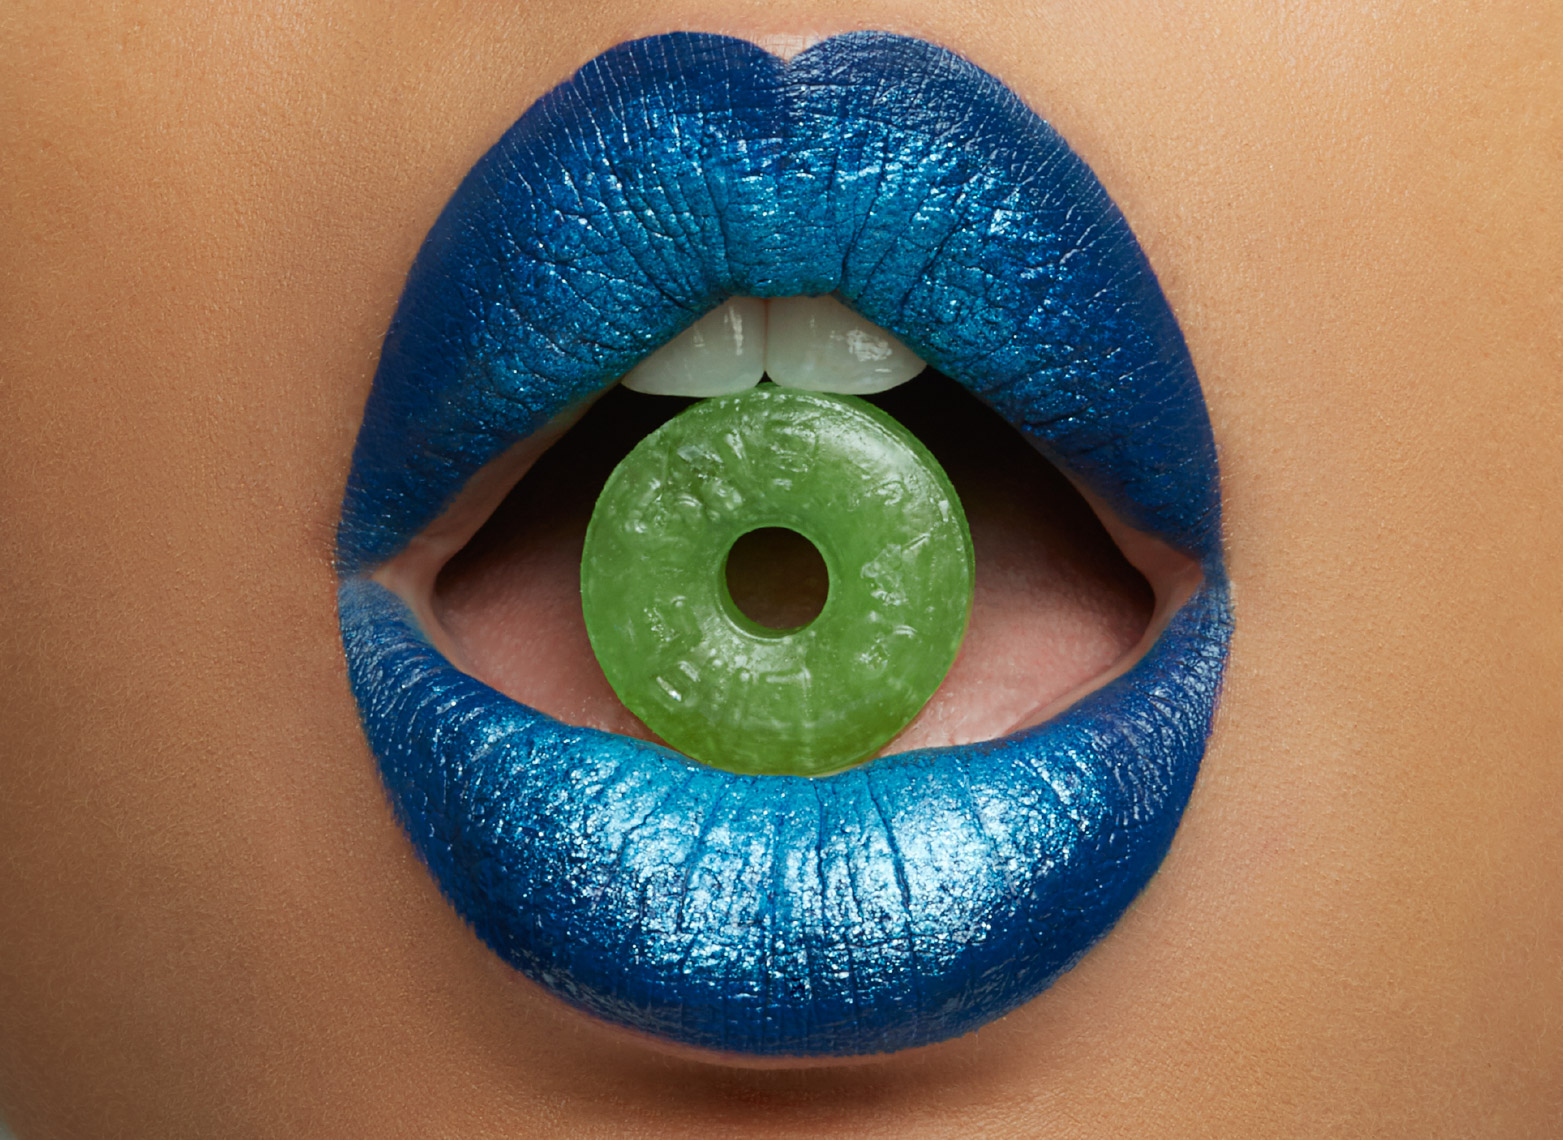 woman with blue shiny lipstick holding green candy between her teeth